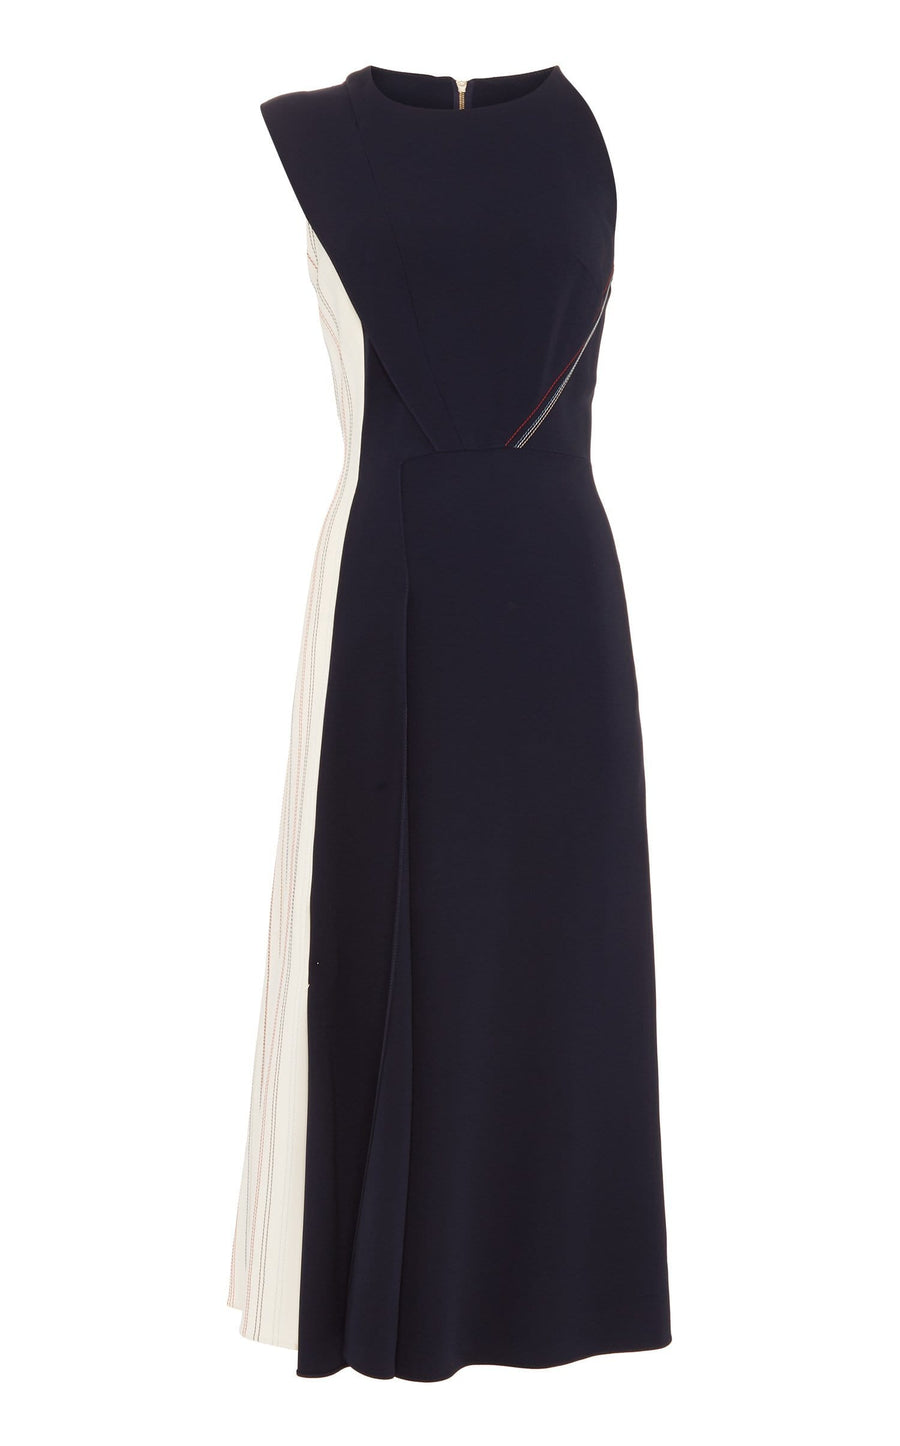 Felton Dress In Navy/White Multi from Roland Mouret